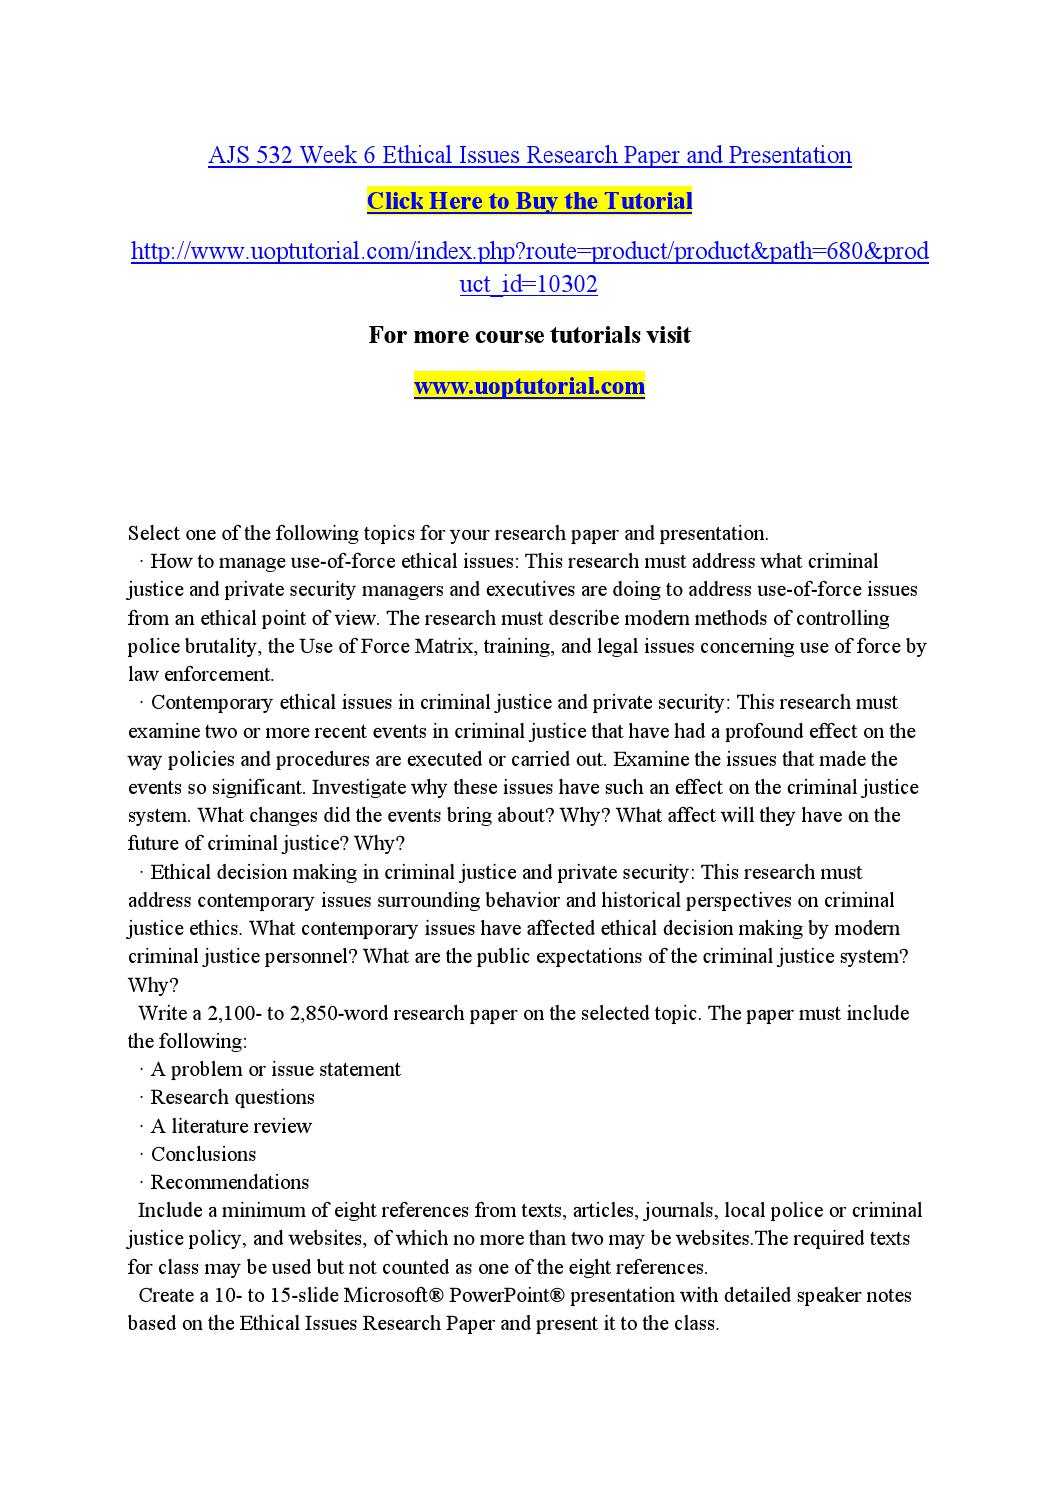 Format for research paper proposal